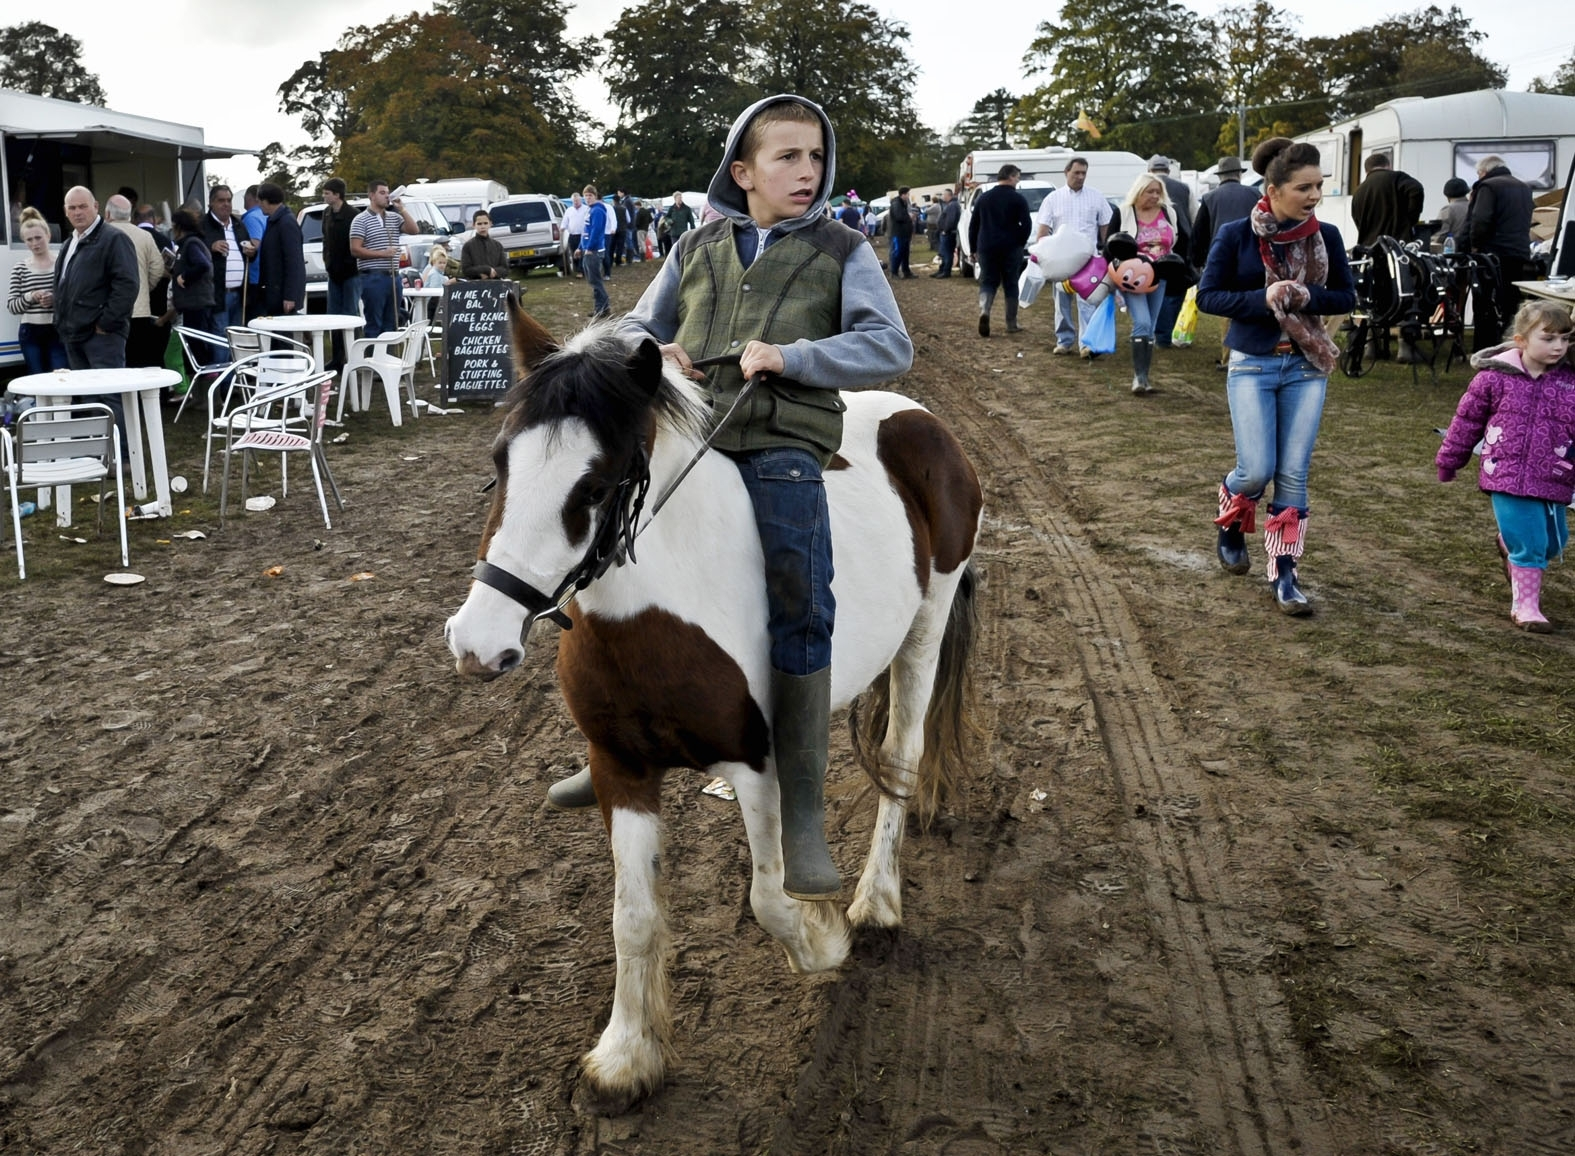 The October Stow Fair. Picture by Ben Birchall / PA